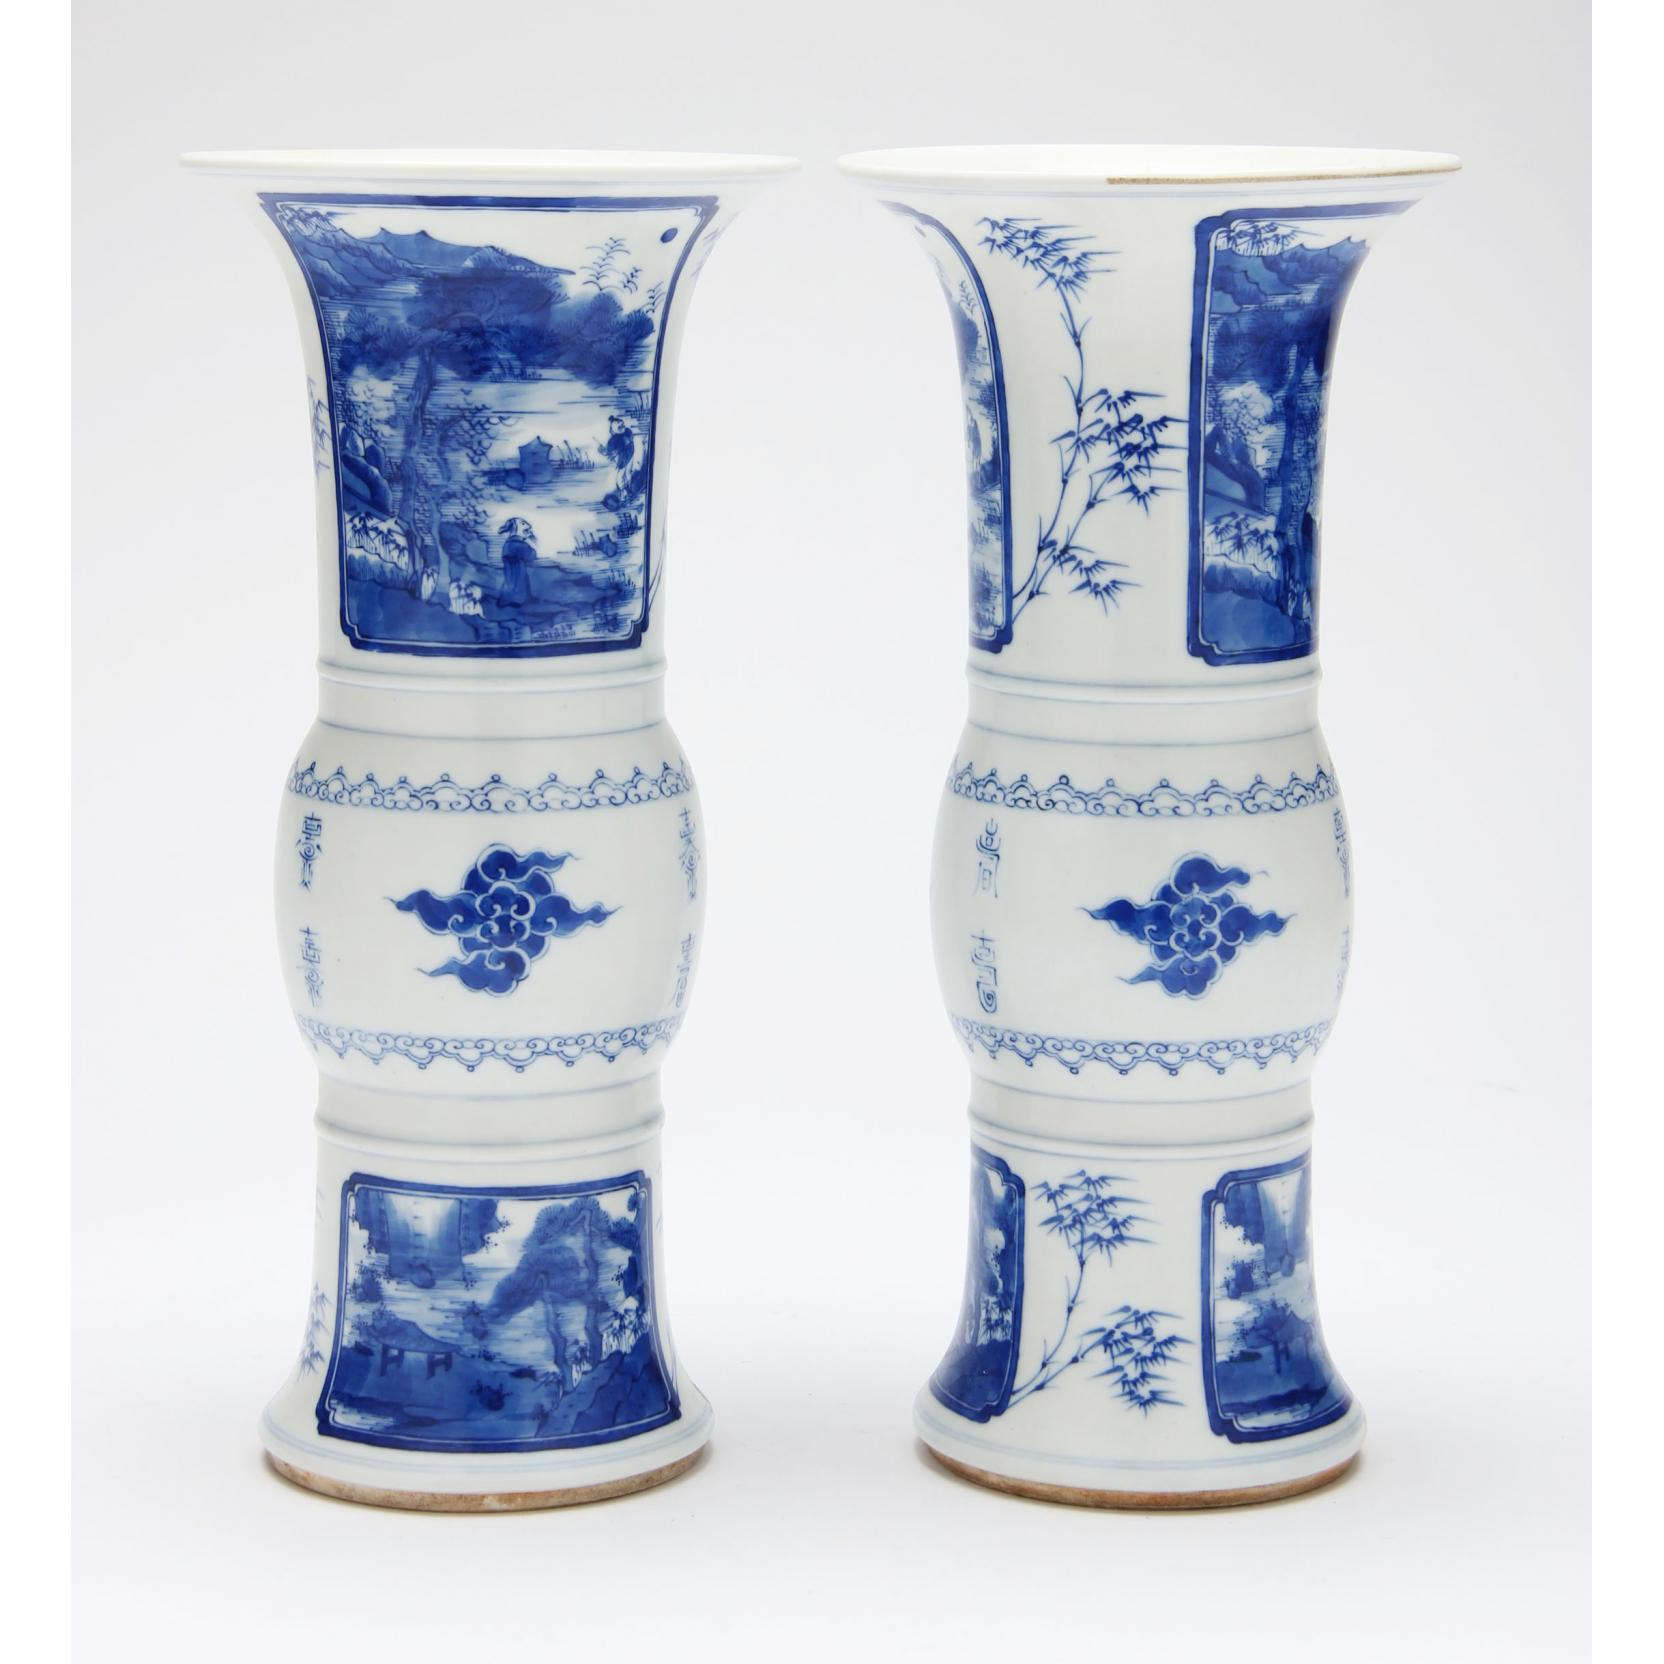 pair-of-chinese-republic-period-gu-vases